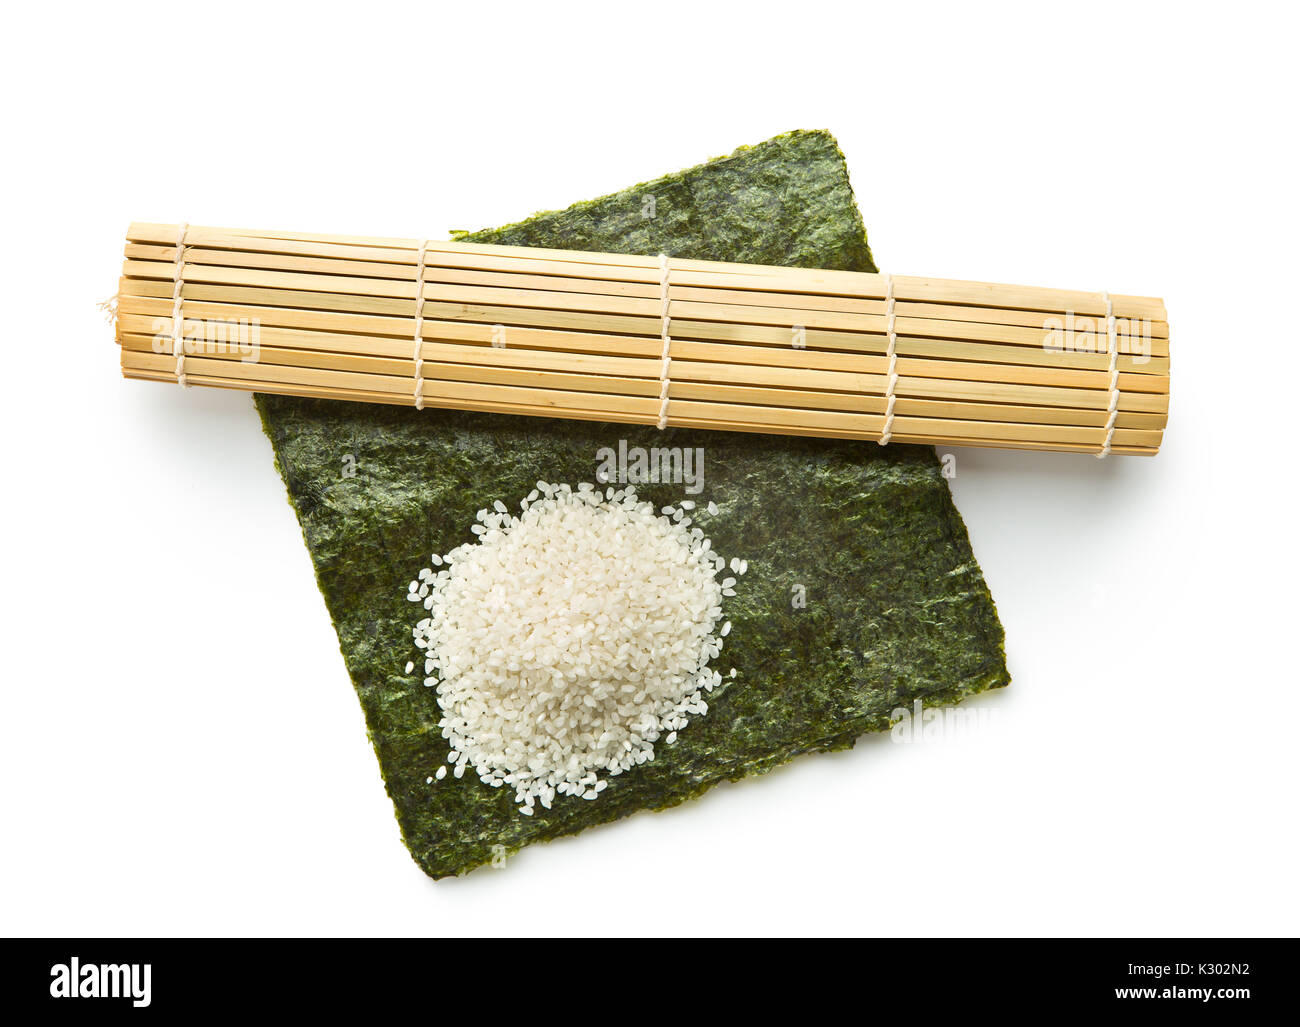 Green nori sheet , rice and bamboo mat isolated on white background. Sushi ingredients. - Stock Image